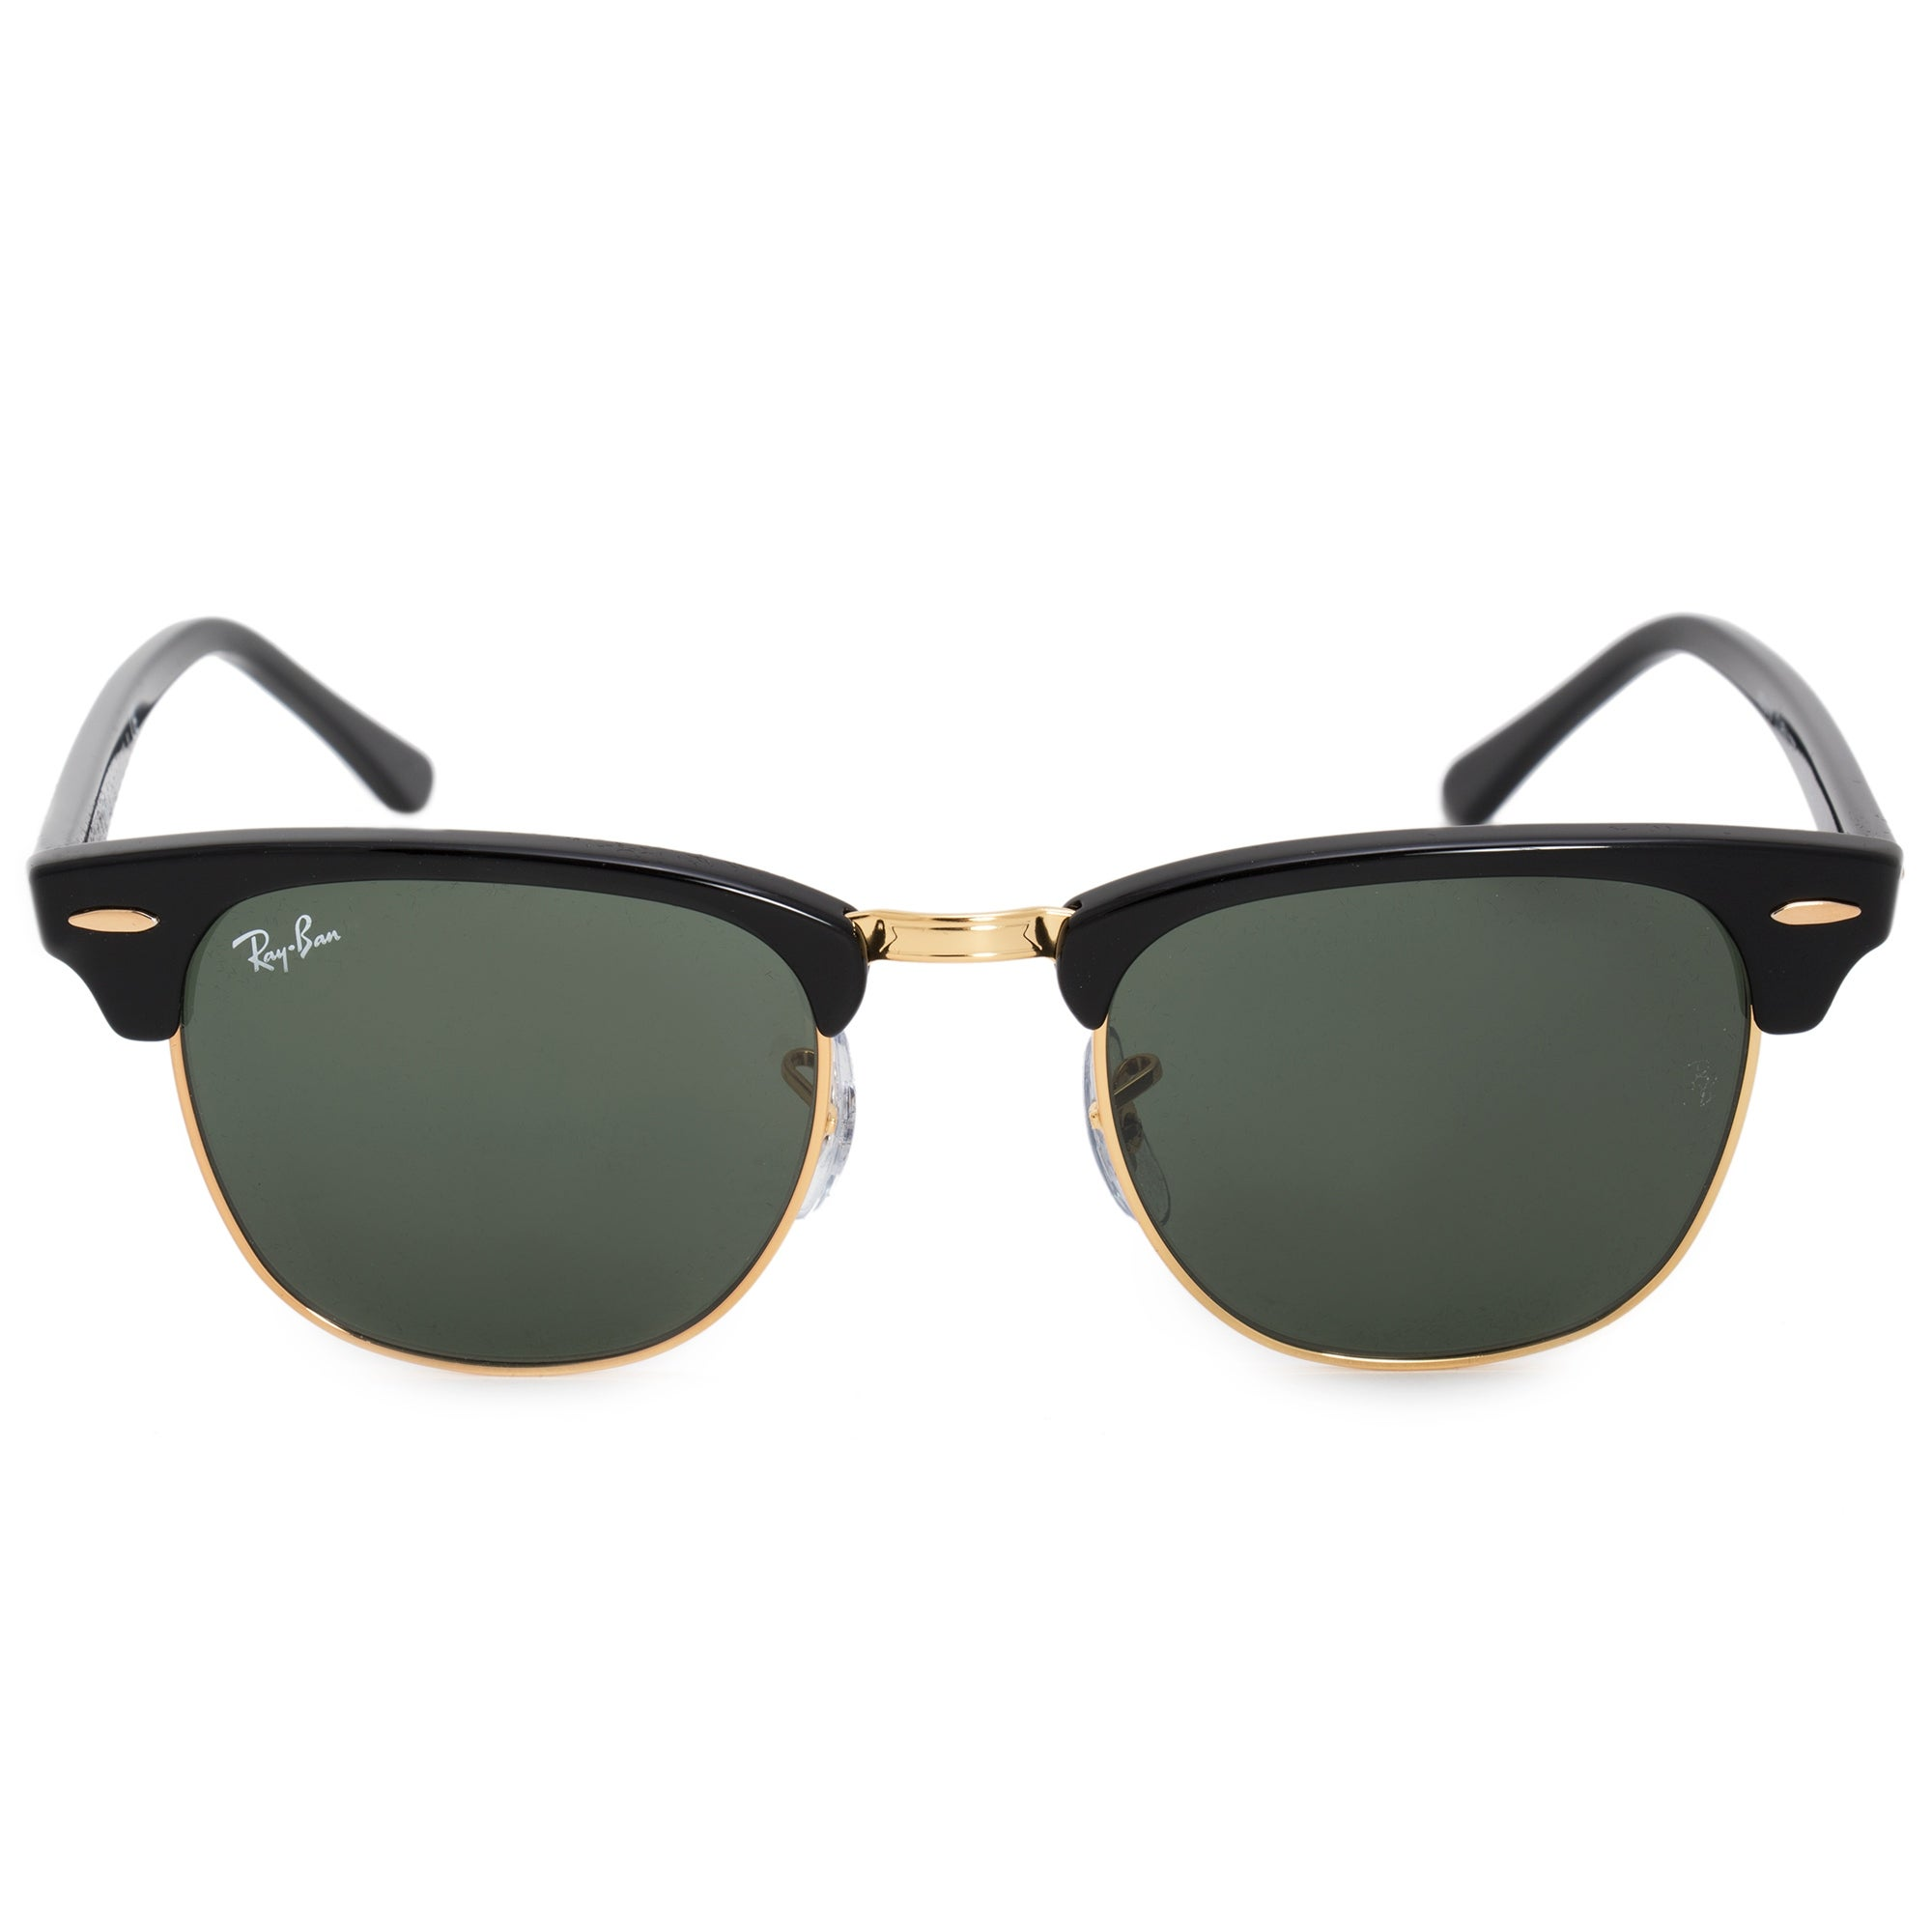 cf19230b17a93 Ray-Ban Women s Sunglasses